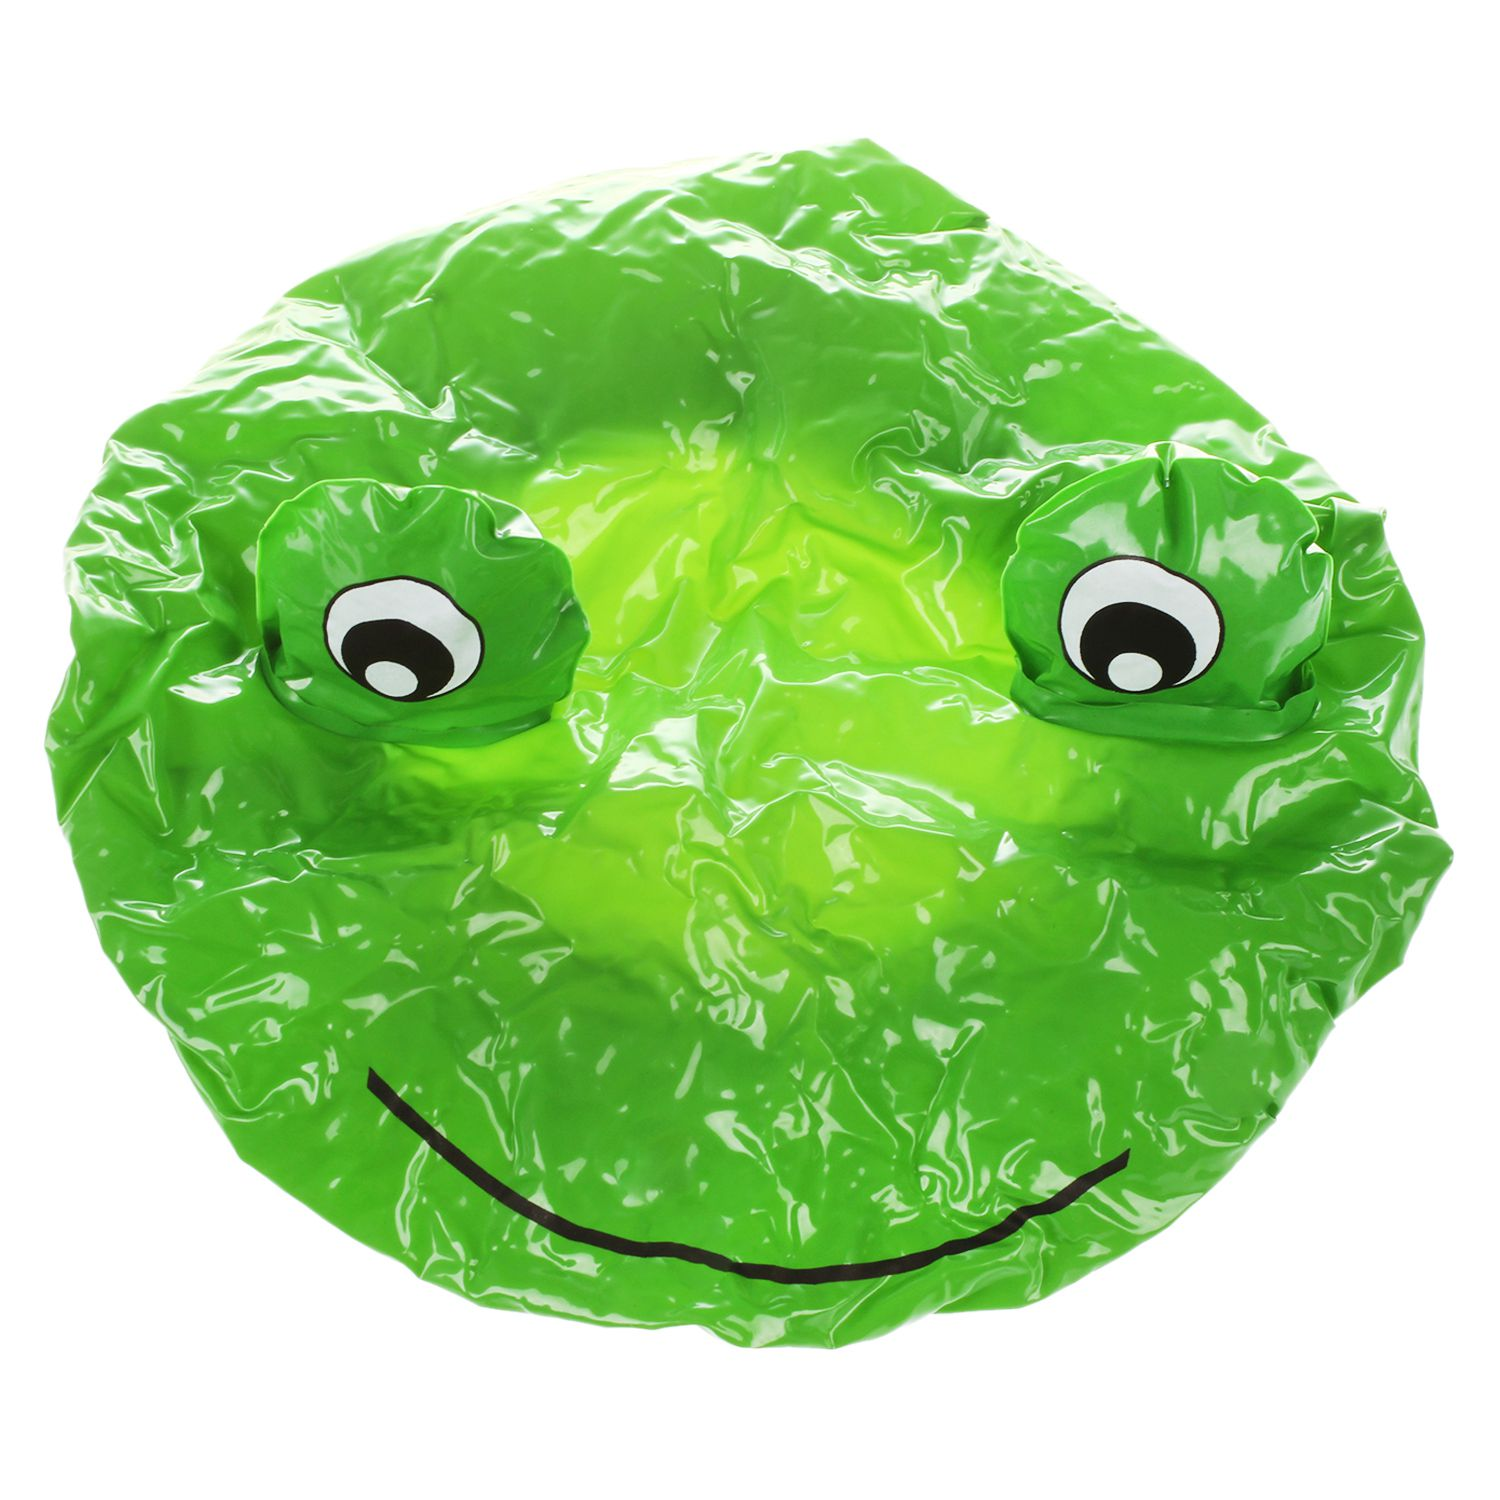 Beauty & Health Cheap Price Hthl-novelty Design Animal Waterproof Shower Cap Bath Dry Hair Cover Protector Hat Green